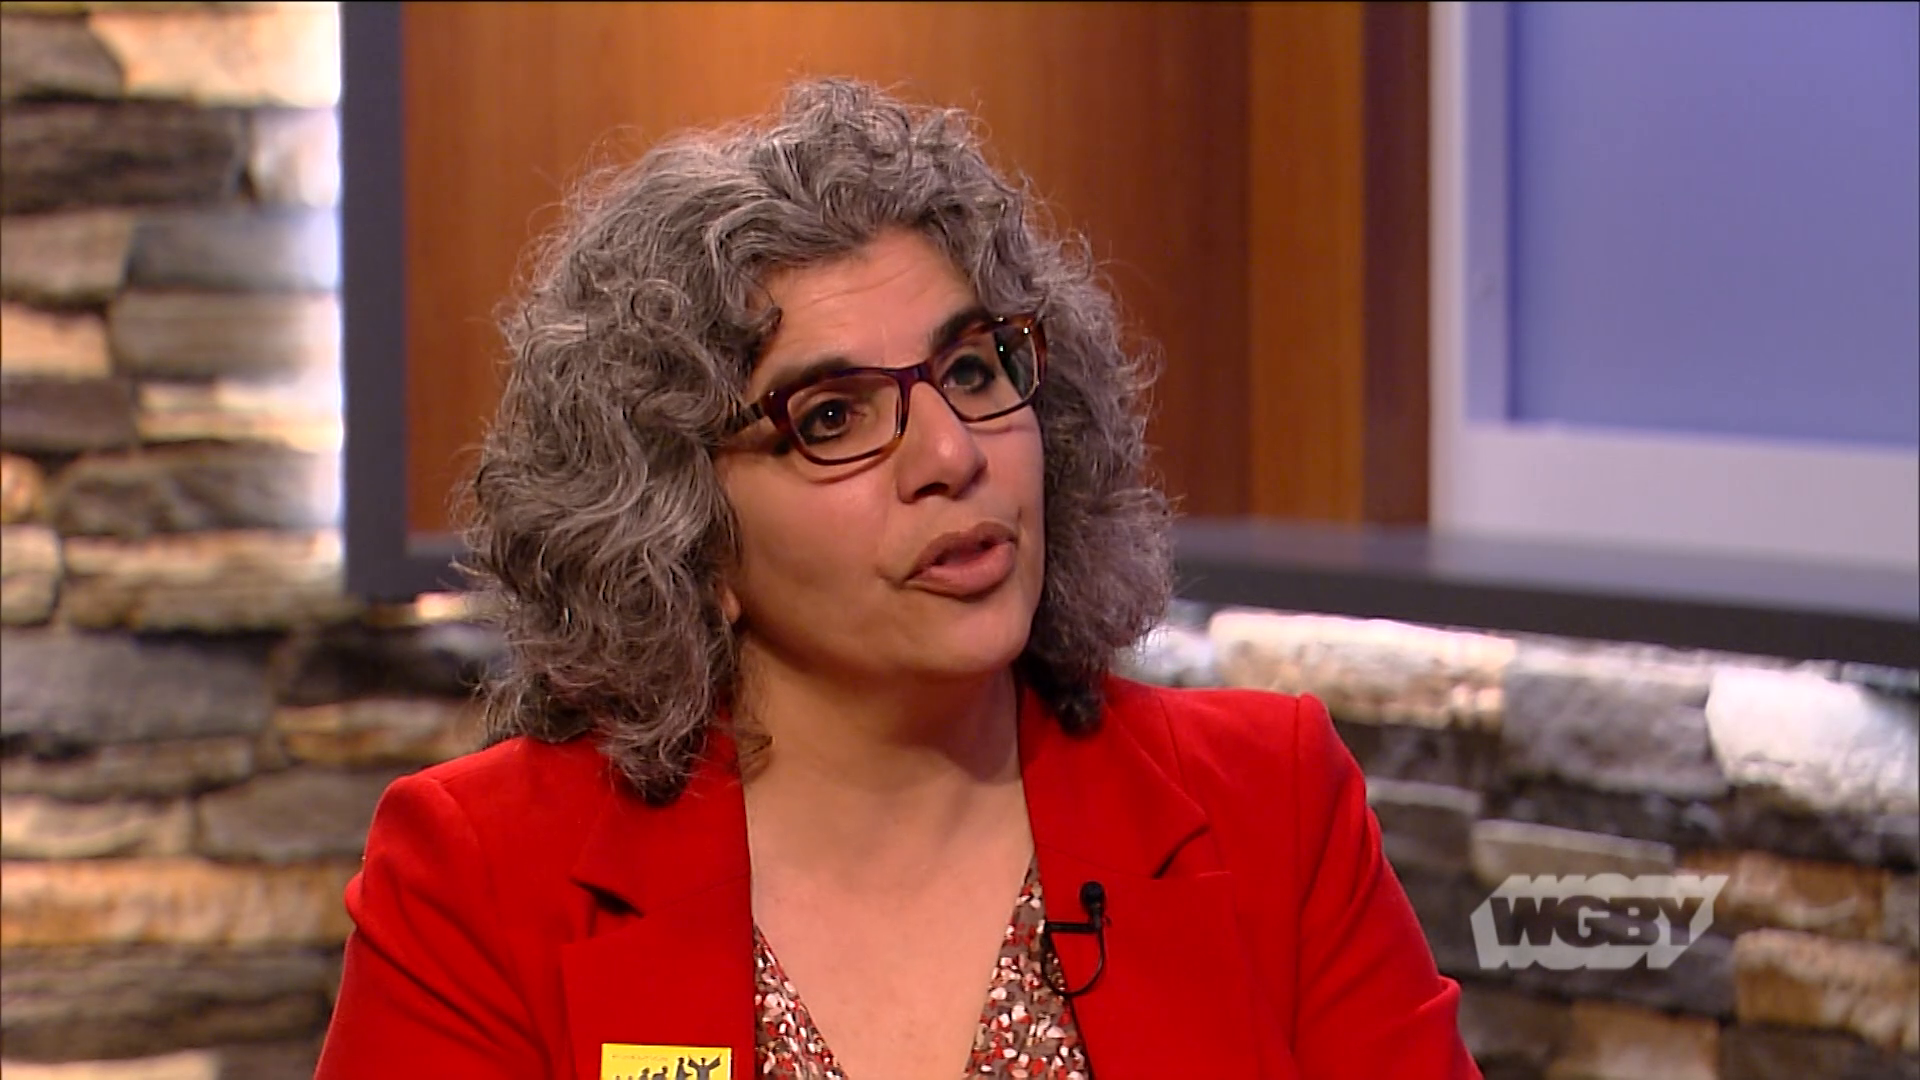 MTA President Merrie Najimy explains why some teachers and students objected to a MCAS question about the perspective of a racist character.